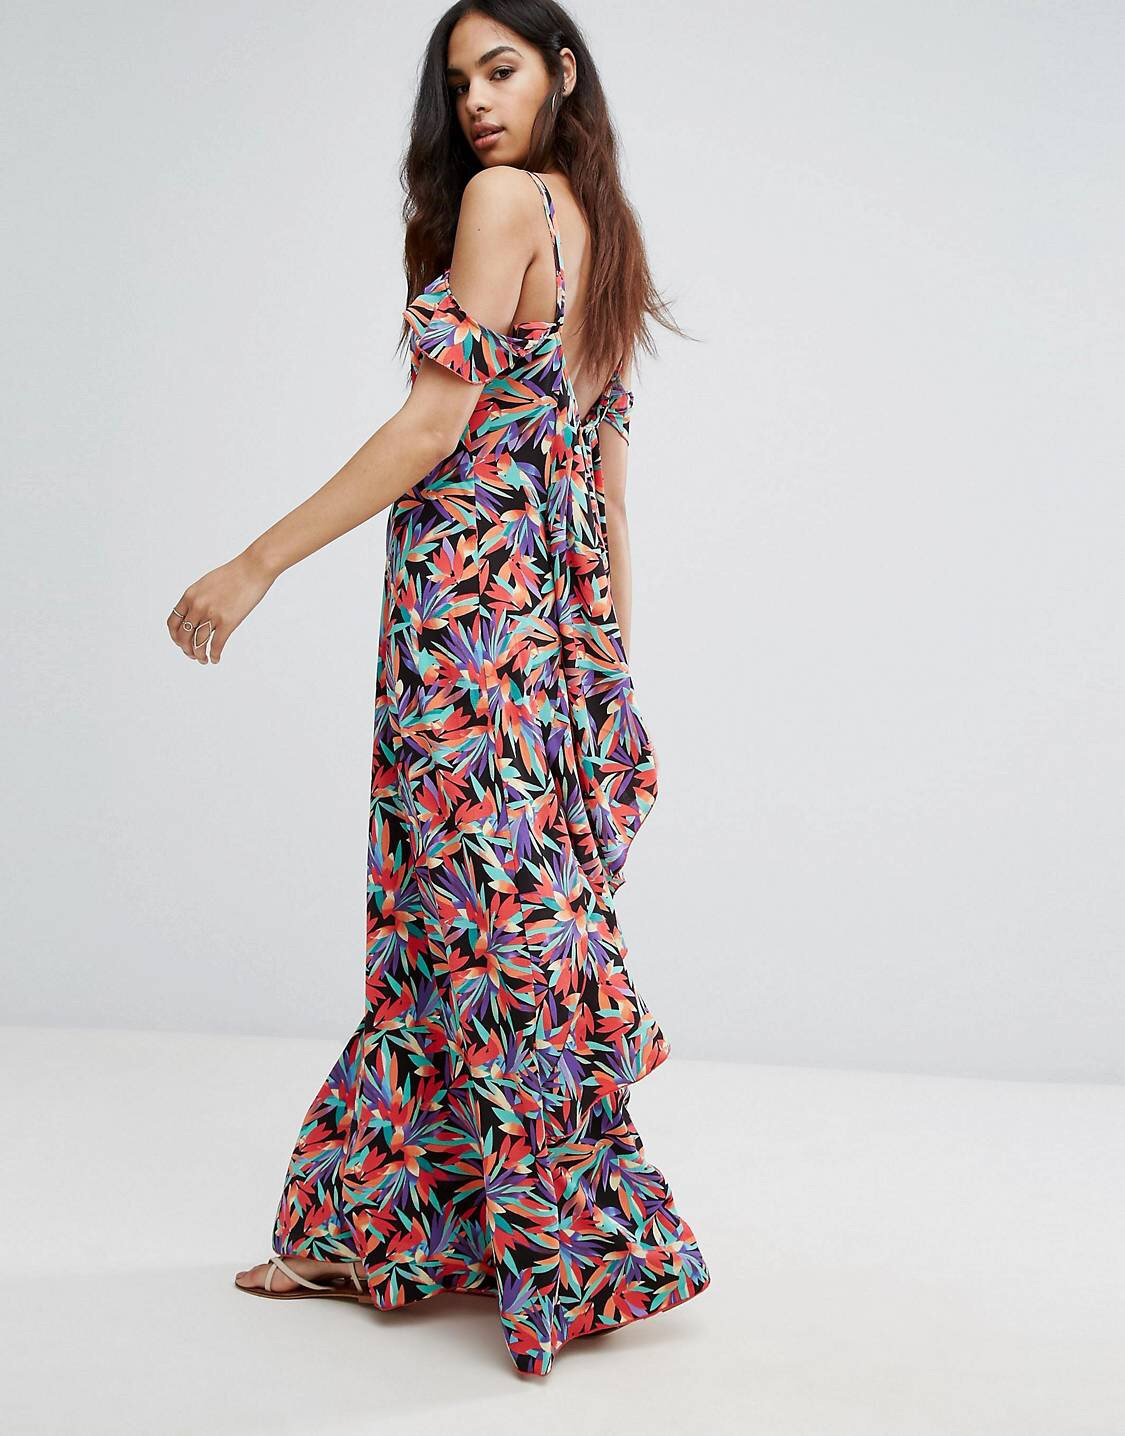 £12.50 boohoo tropical maxi dress. - One of them ones where you gotta buy two. One for you and them.